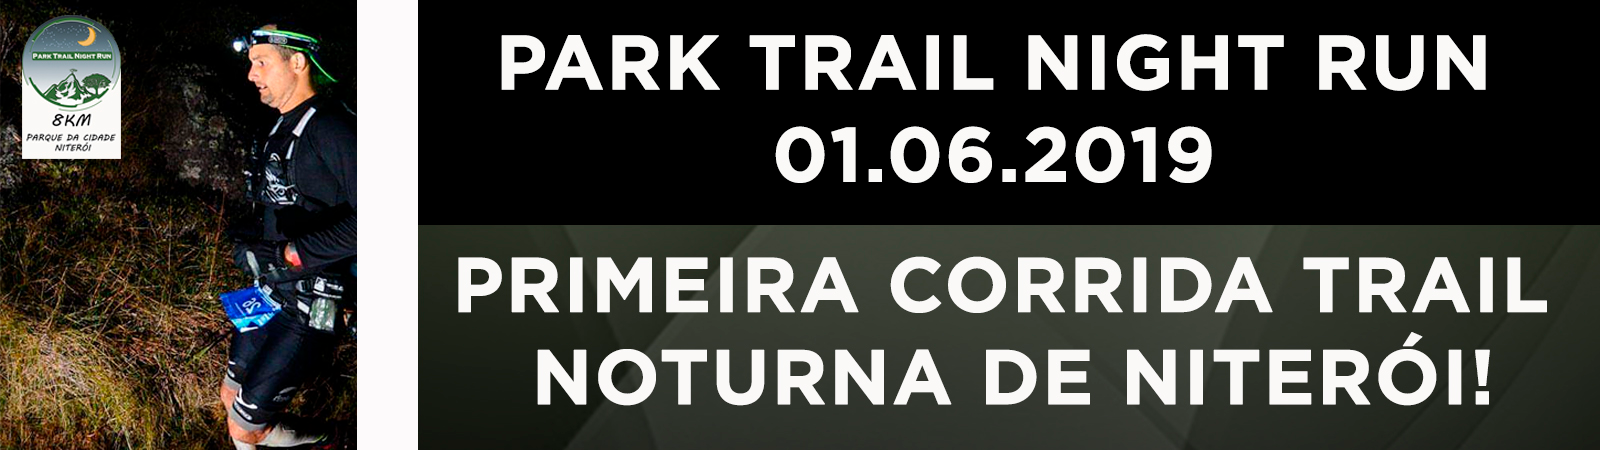 TRAIL RUN NIT2SPORTS - 2019 1ª ETAPA PARK TRAIL NIGHT RUN